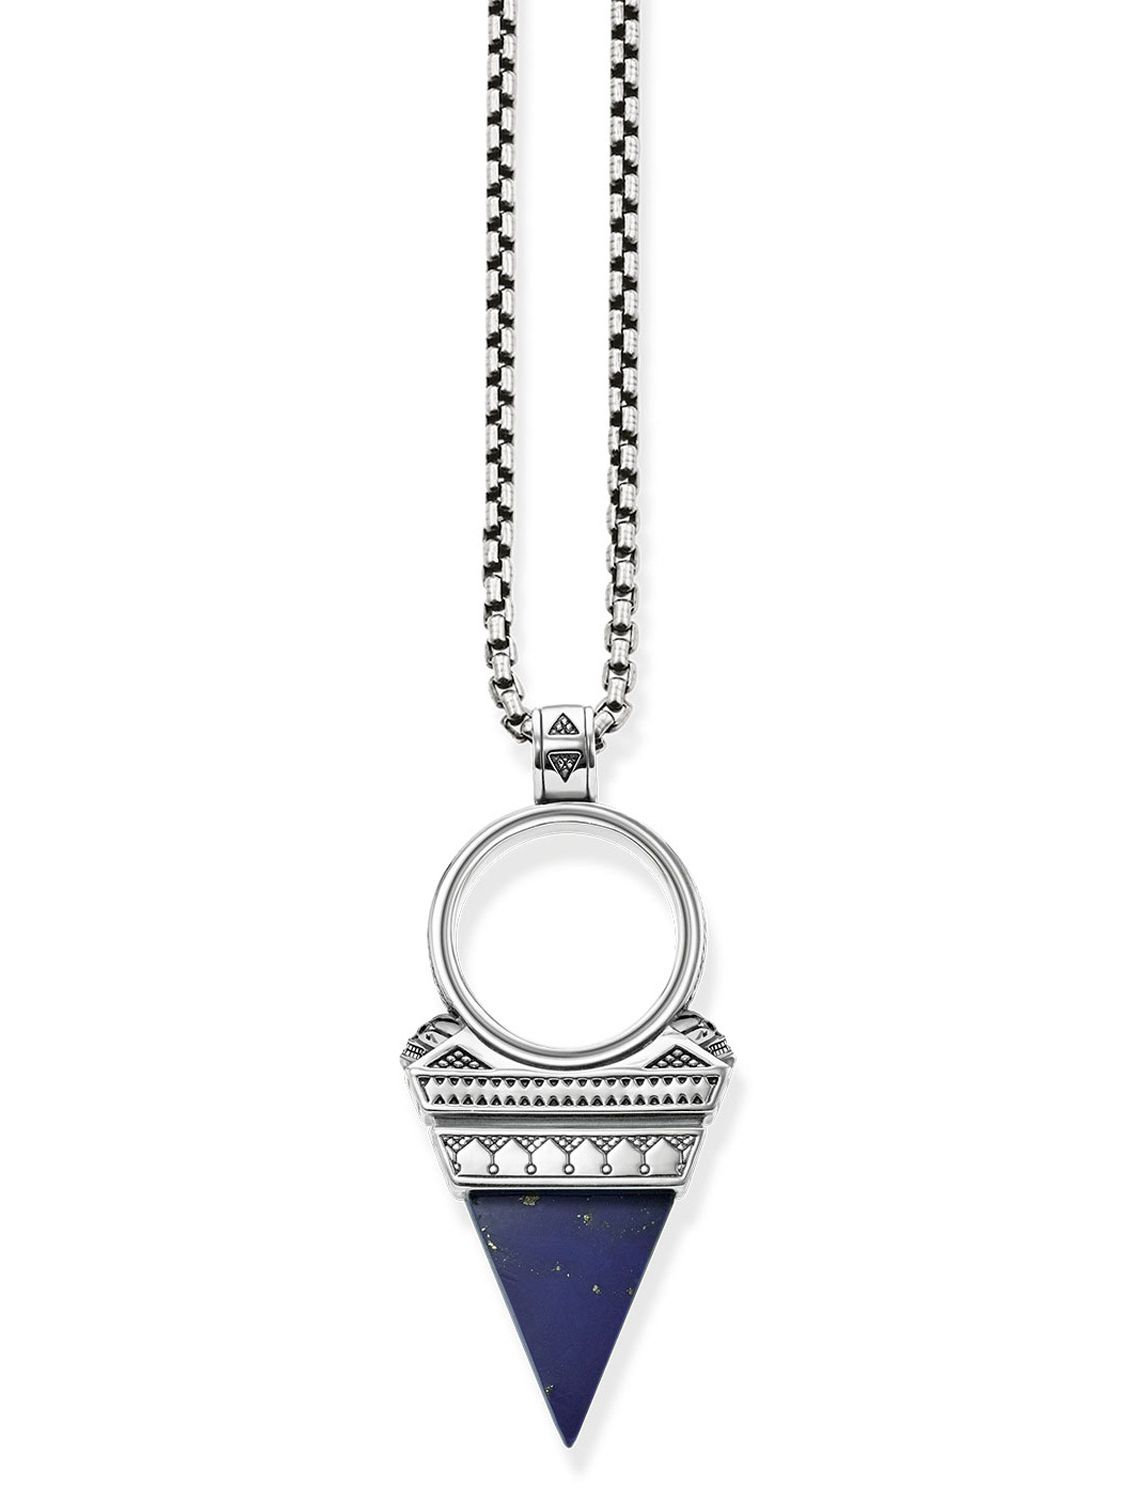 defc25ac7c4c Thomas Sabo KE1780-531-1-L55v Men s Necklace Triangle Blue Image ...